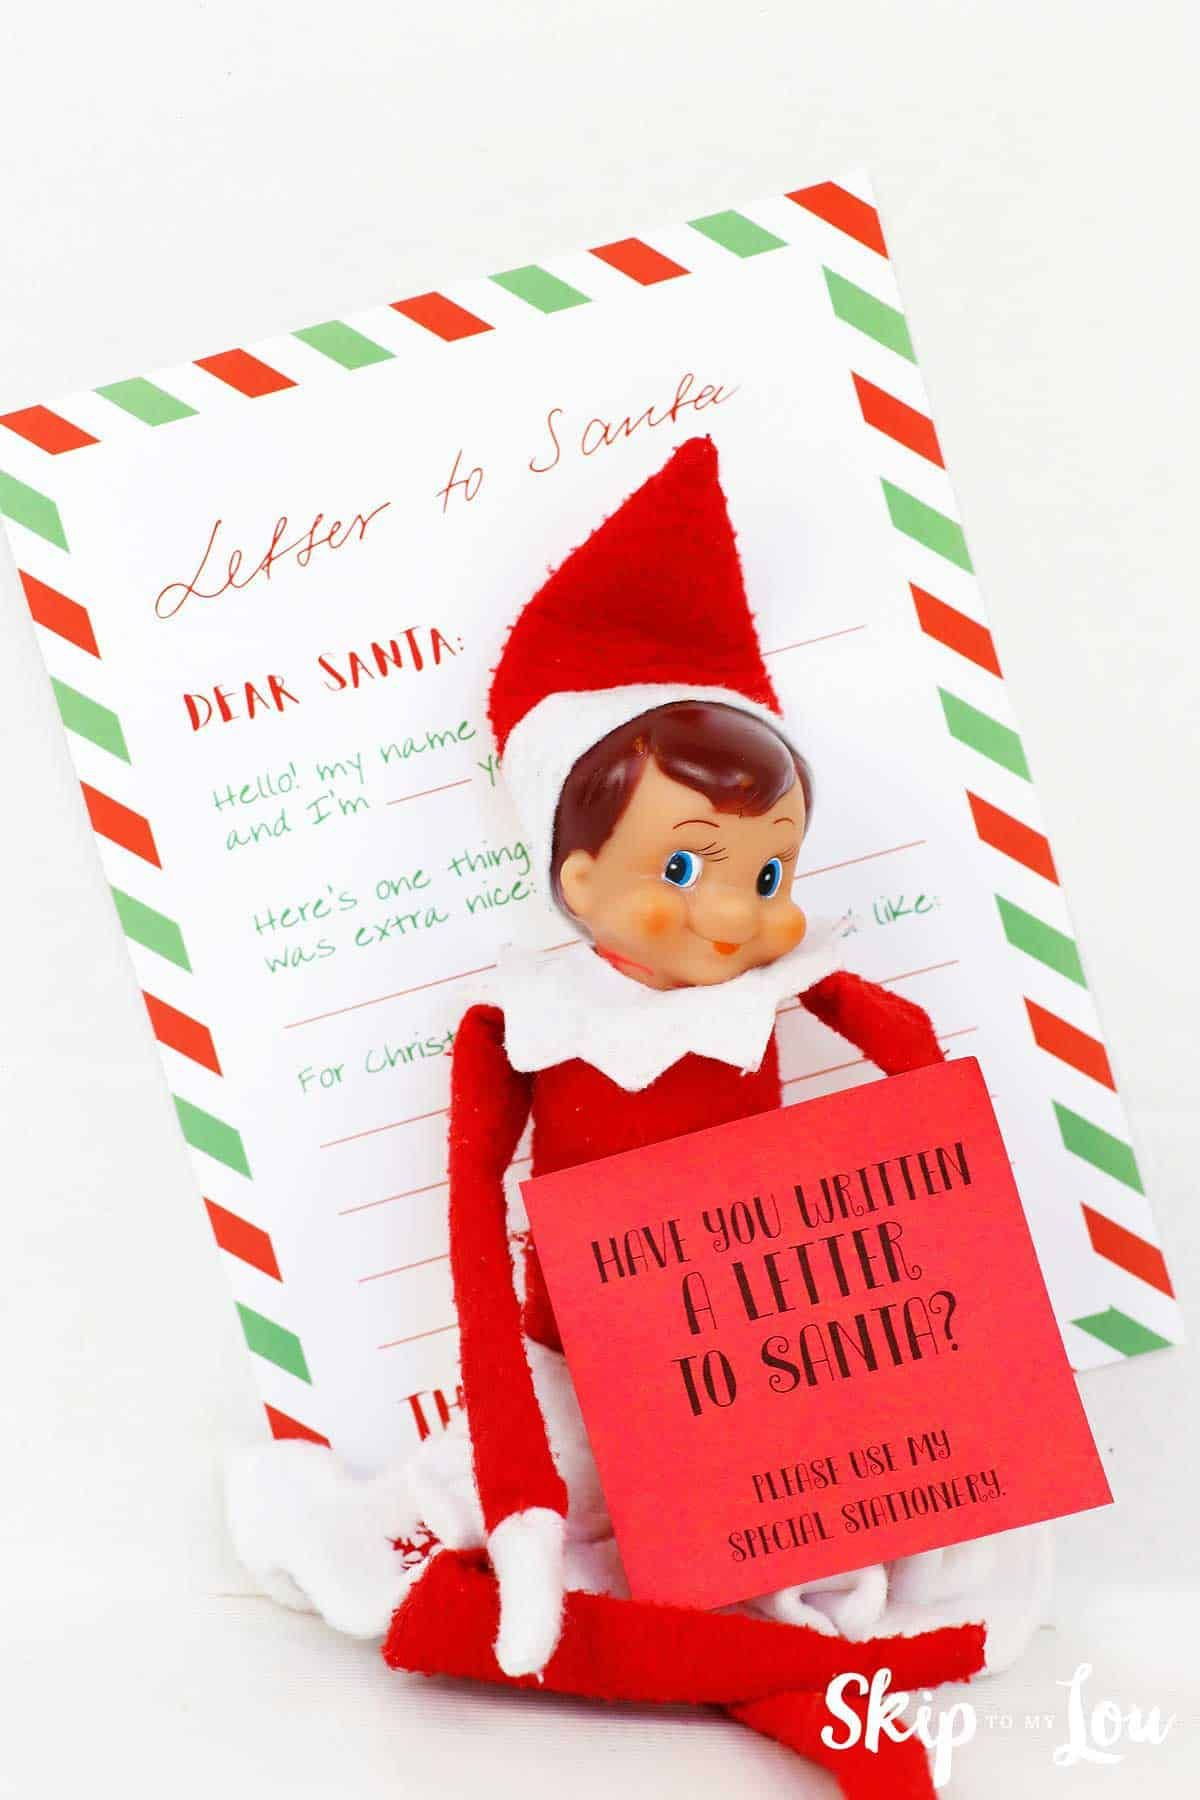 Elf With Letter To Santa And Post It Note Asking If You Have Written Your Letter Santa Letter Template Santa Template Free Letters From Santa